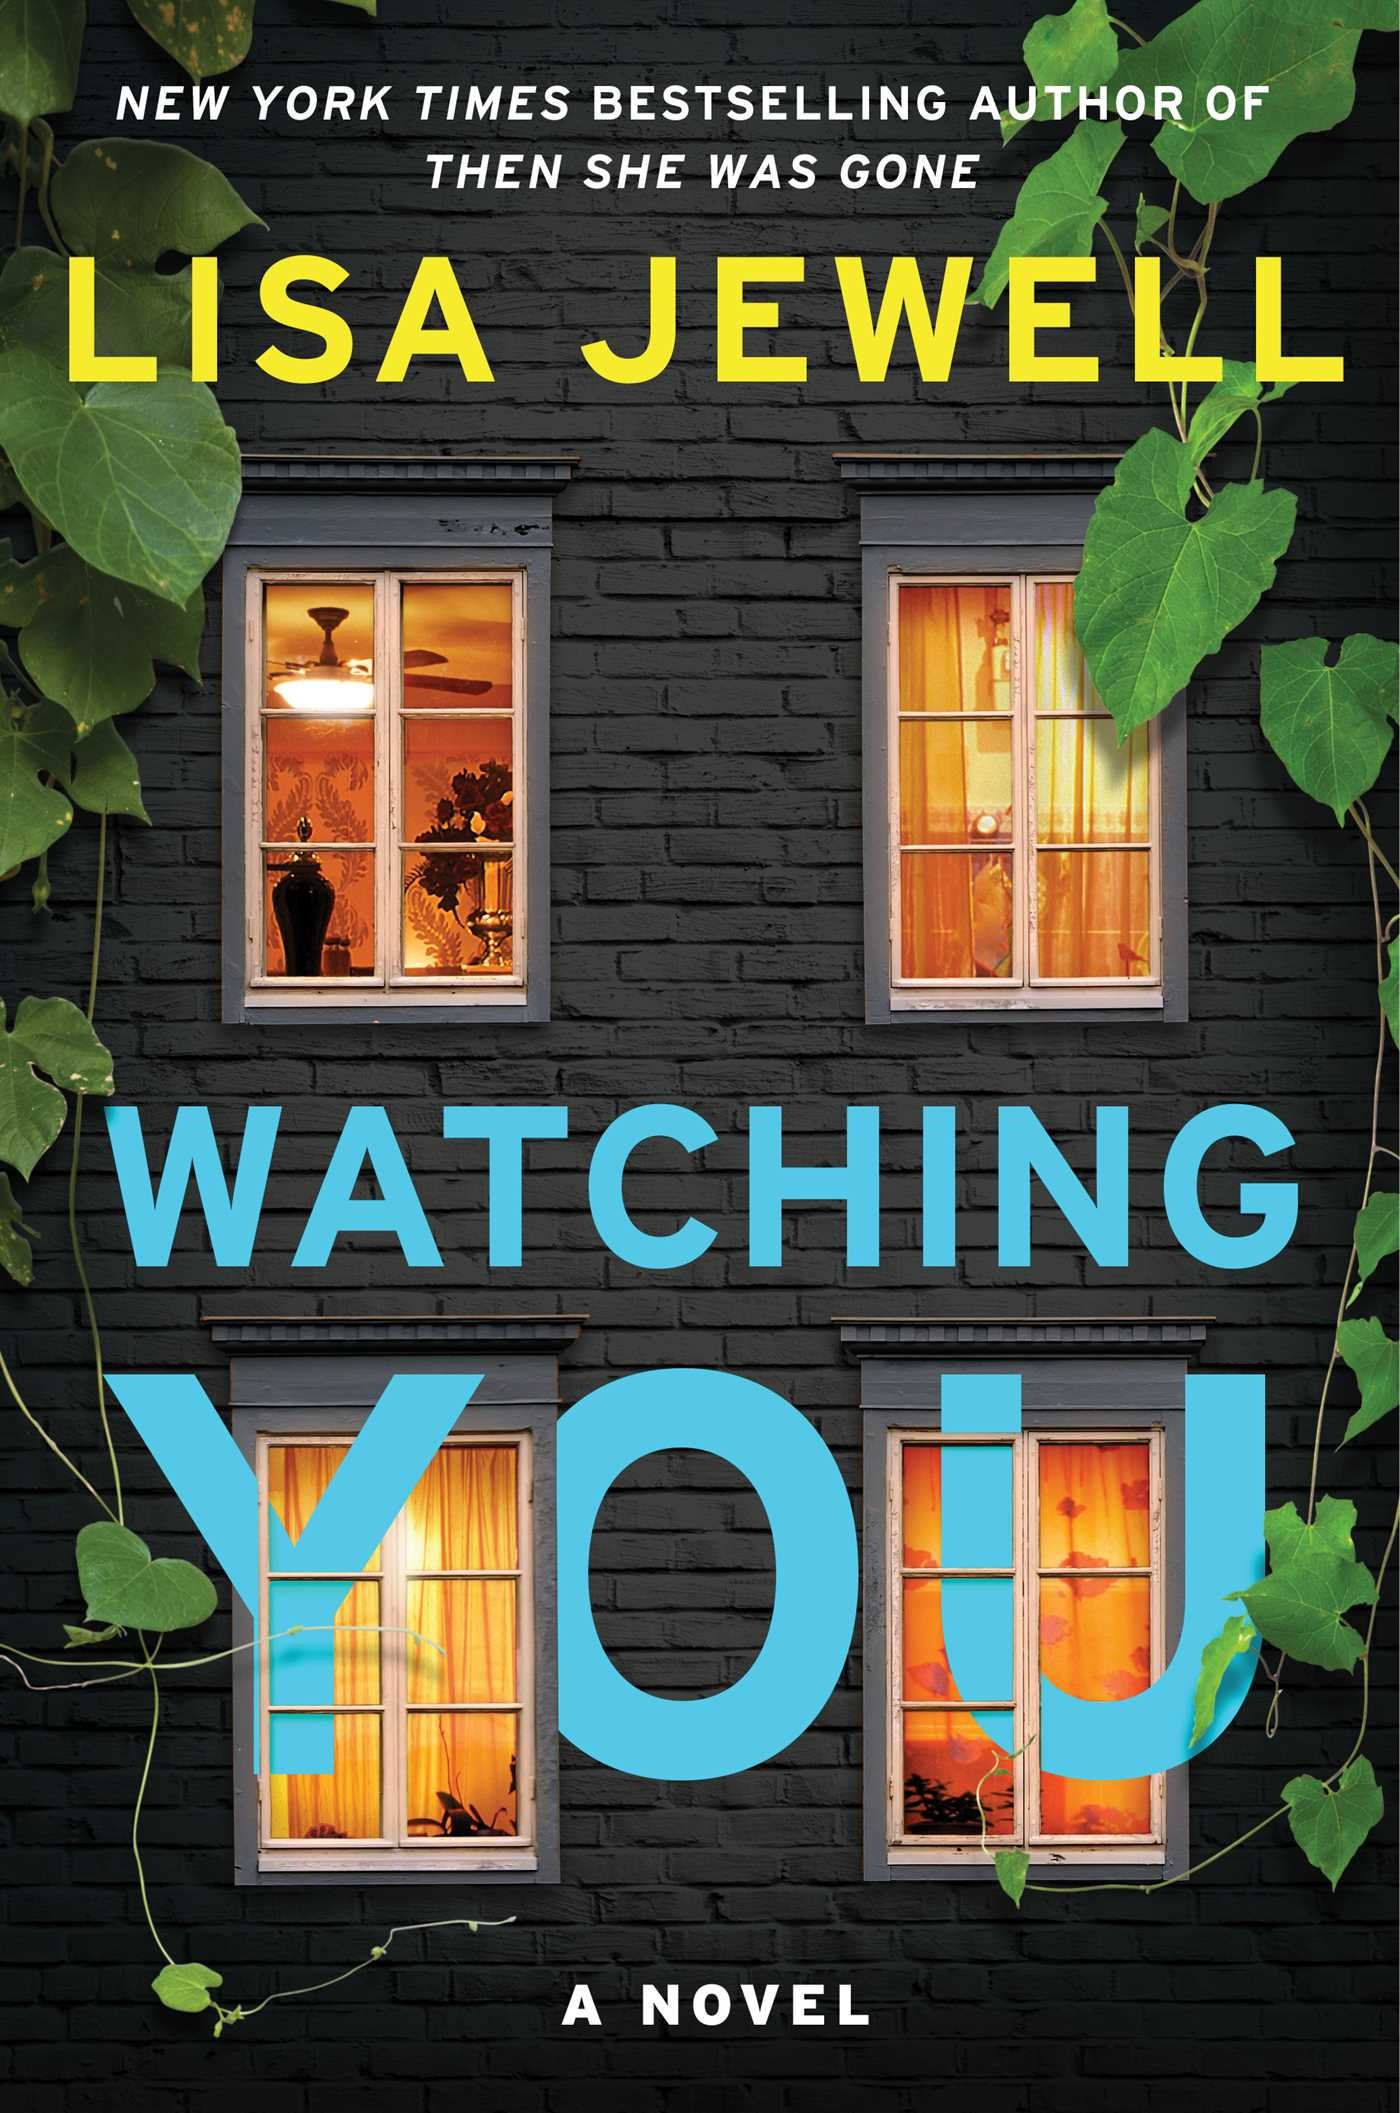 watching you by lisa jewell.jpg